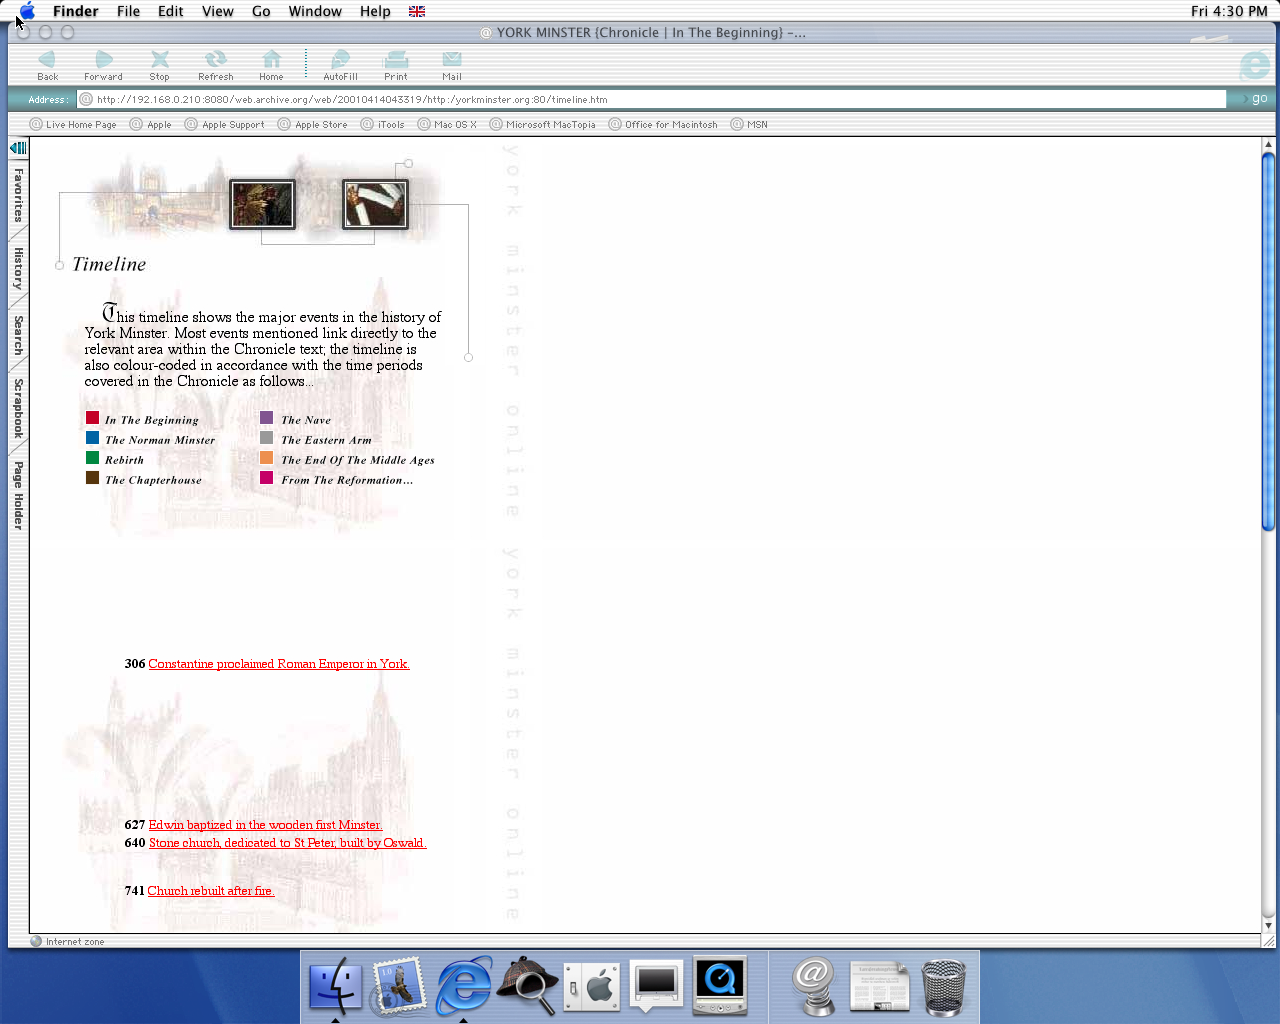 OS X 10.0 PPC with Microsoft Internet Explorer 5.1 for Mac Preview displaying a page from York Minster archived at April 14, 2001 at 04:33:19